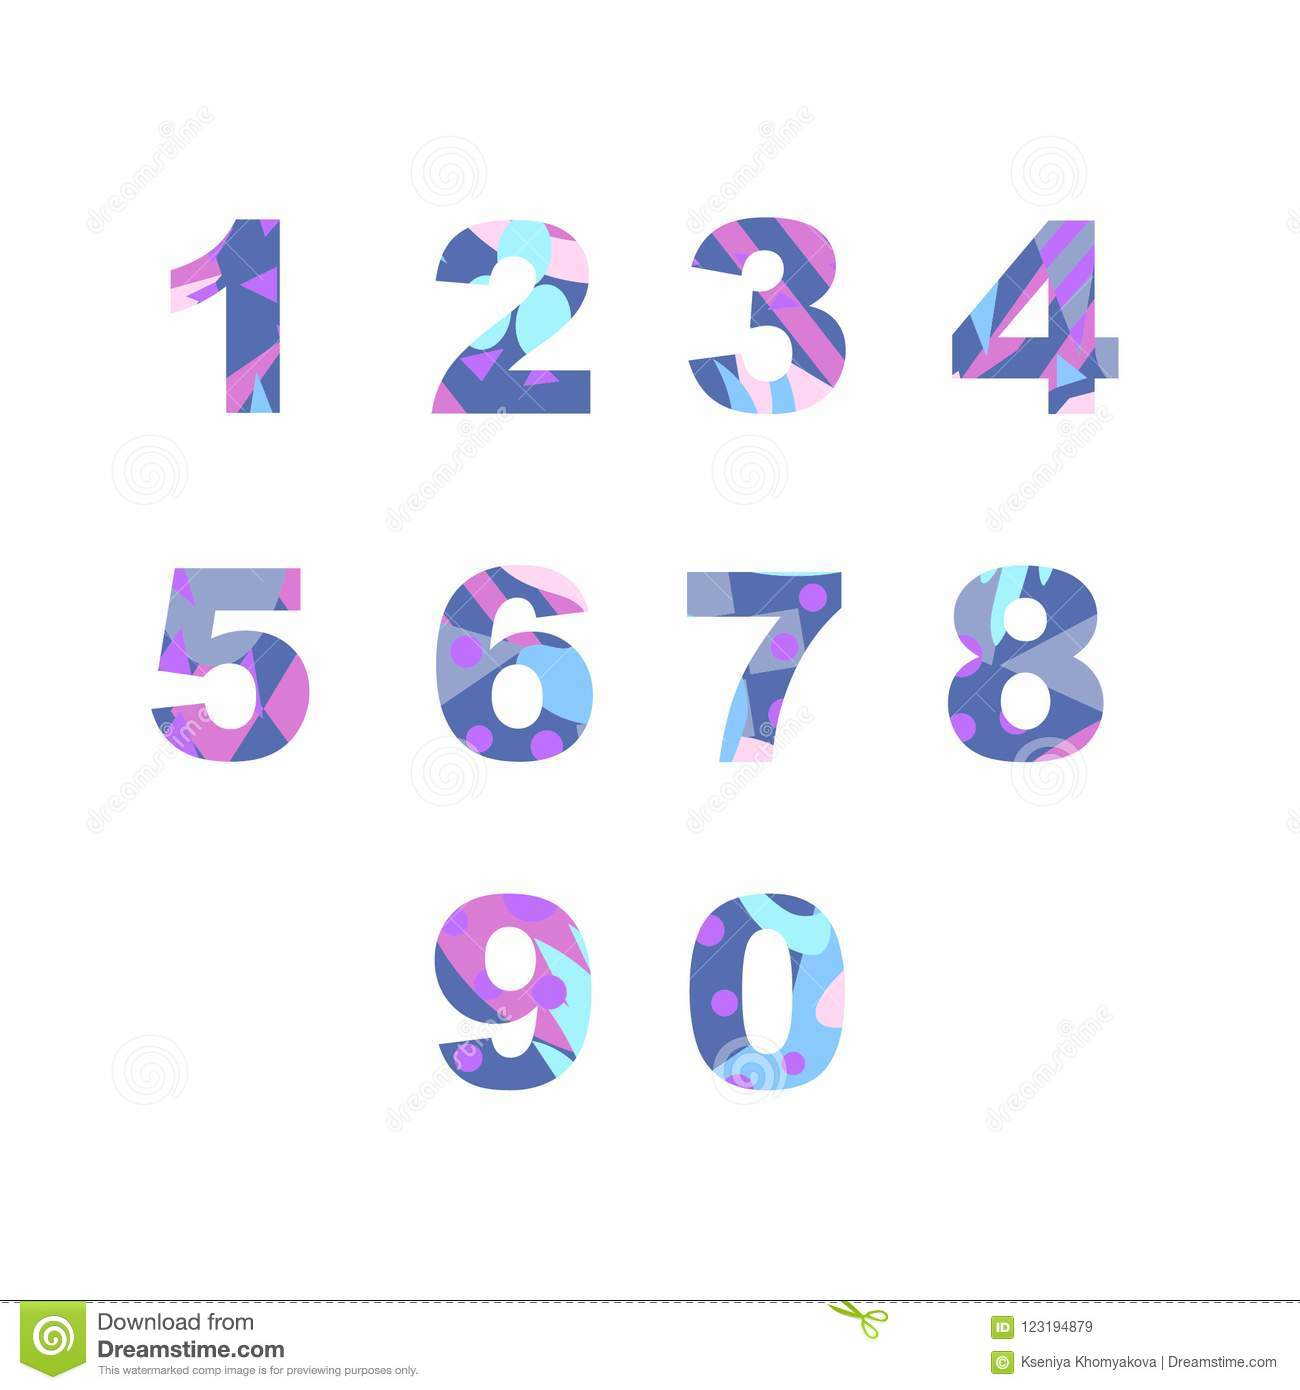 Numbers with abstract fill